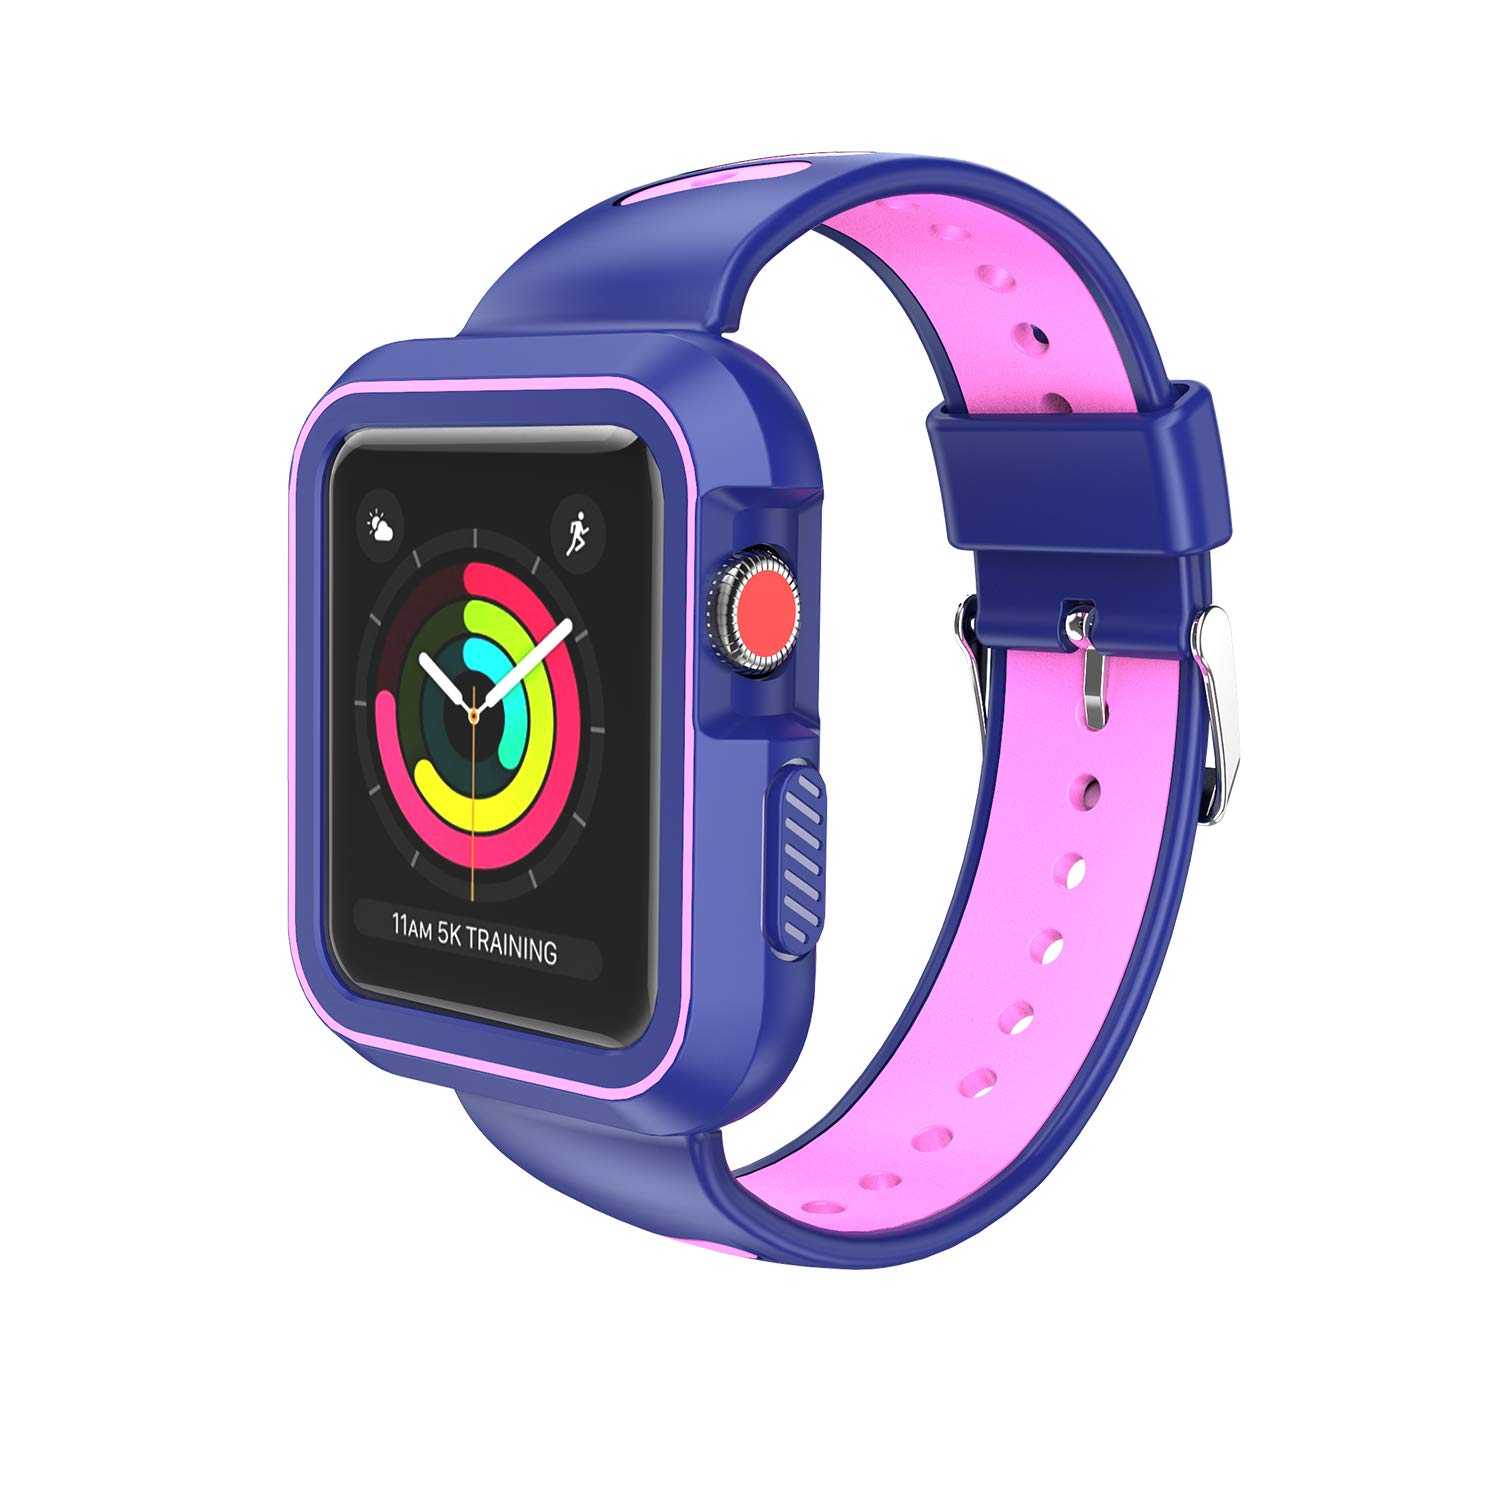 VanGoddy Protective Silicone & EVA Blue Pink Shockproof Hybrid Band Case for Apple Watch 38mm Series 3, Series 2, Series 1